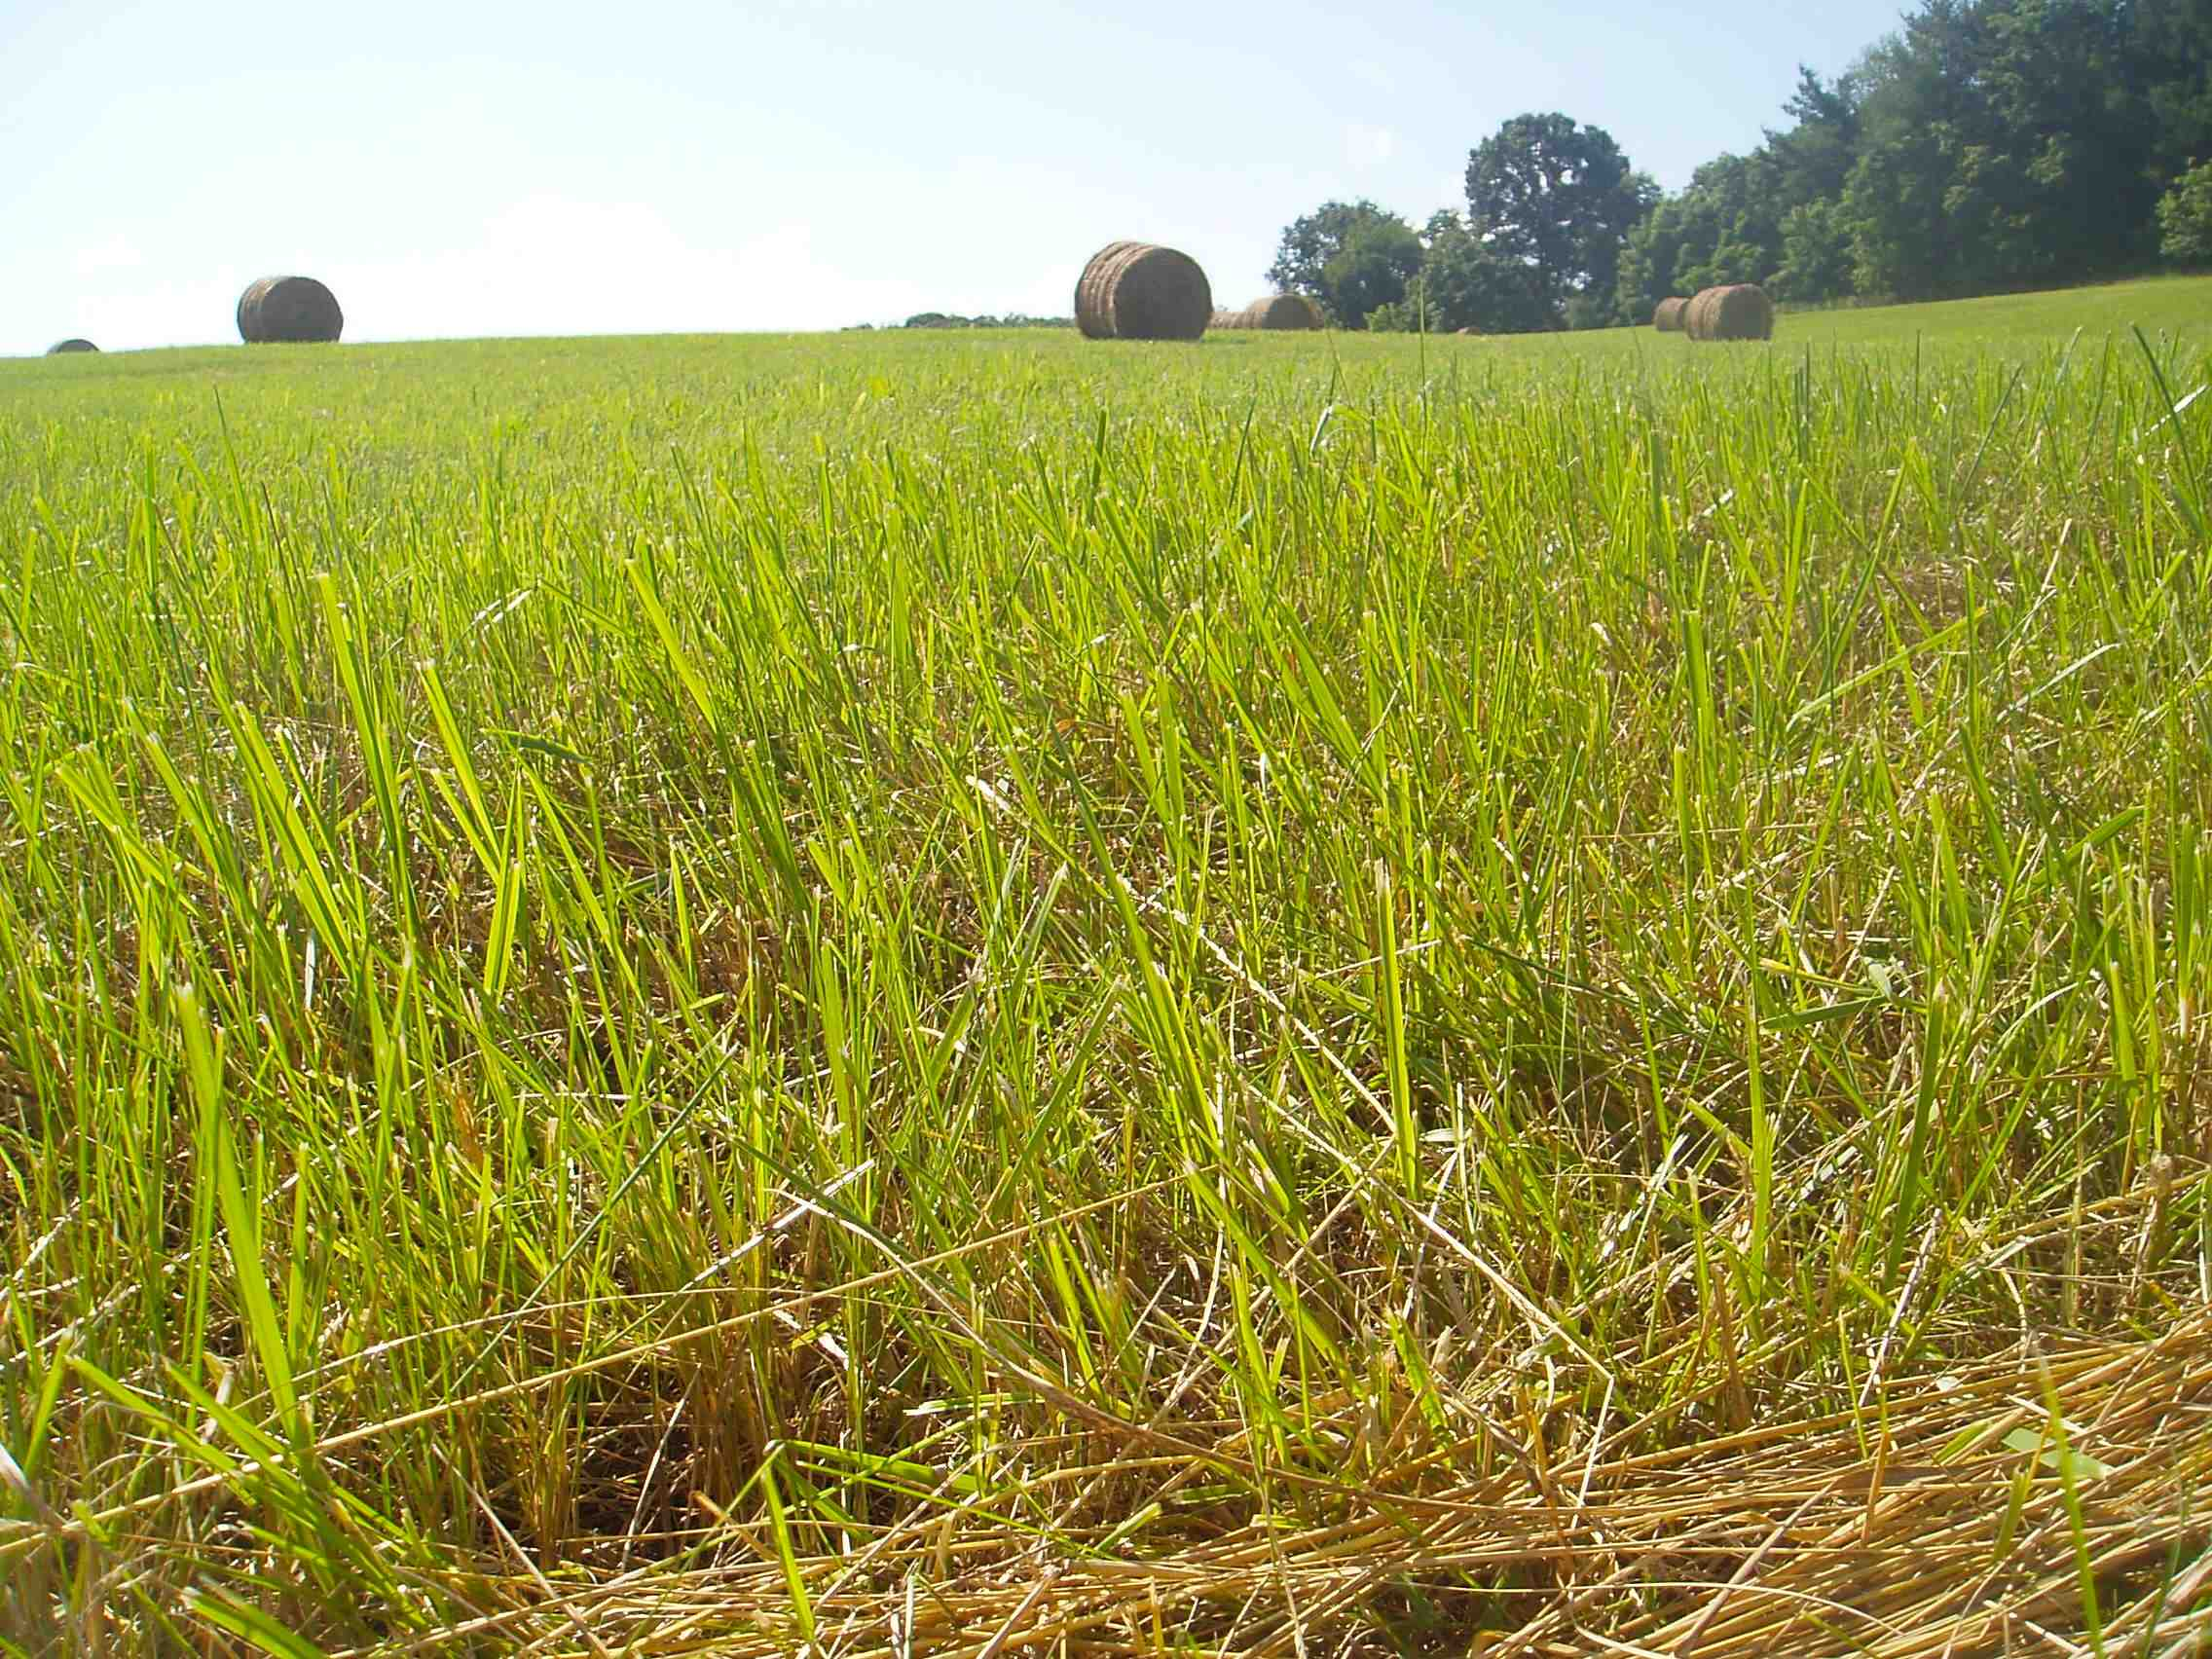 Pastures and hayfields comprise over 600 million acres in the United States, more than triple all types of grain fields combined.